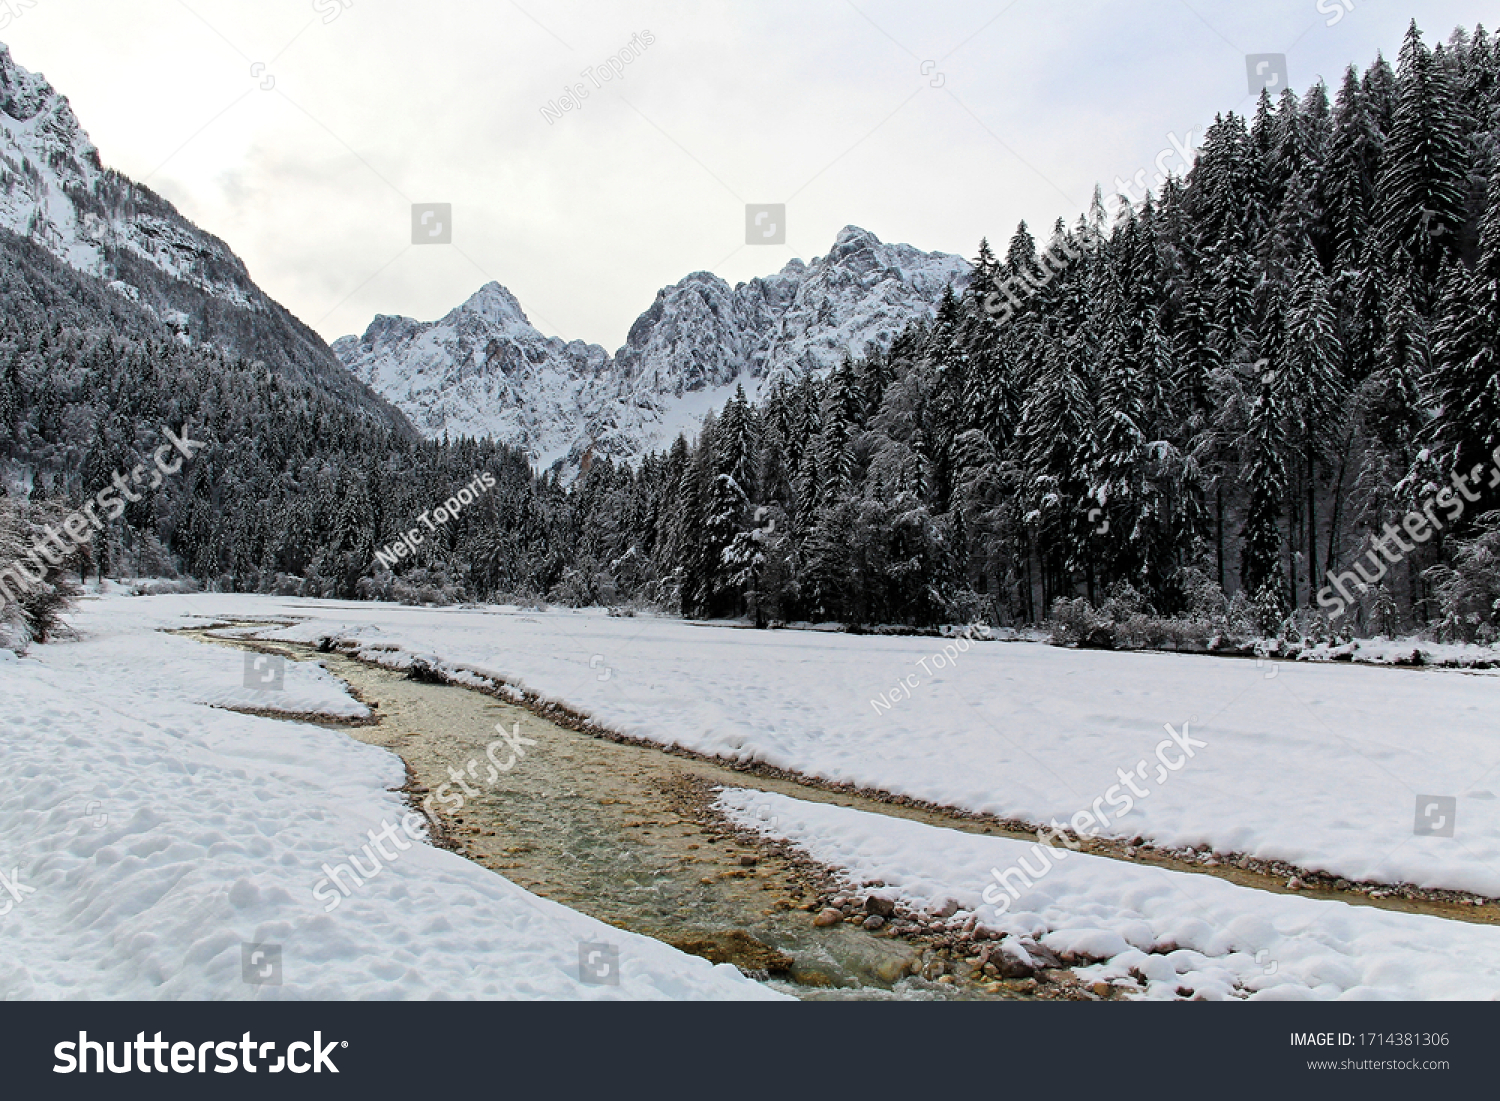 stock-photo-snow-sprinkled-mountains-and